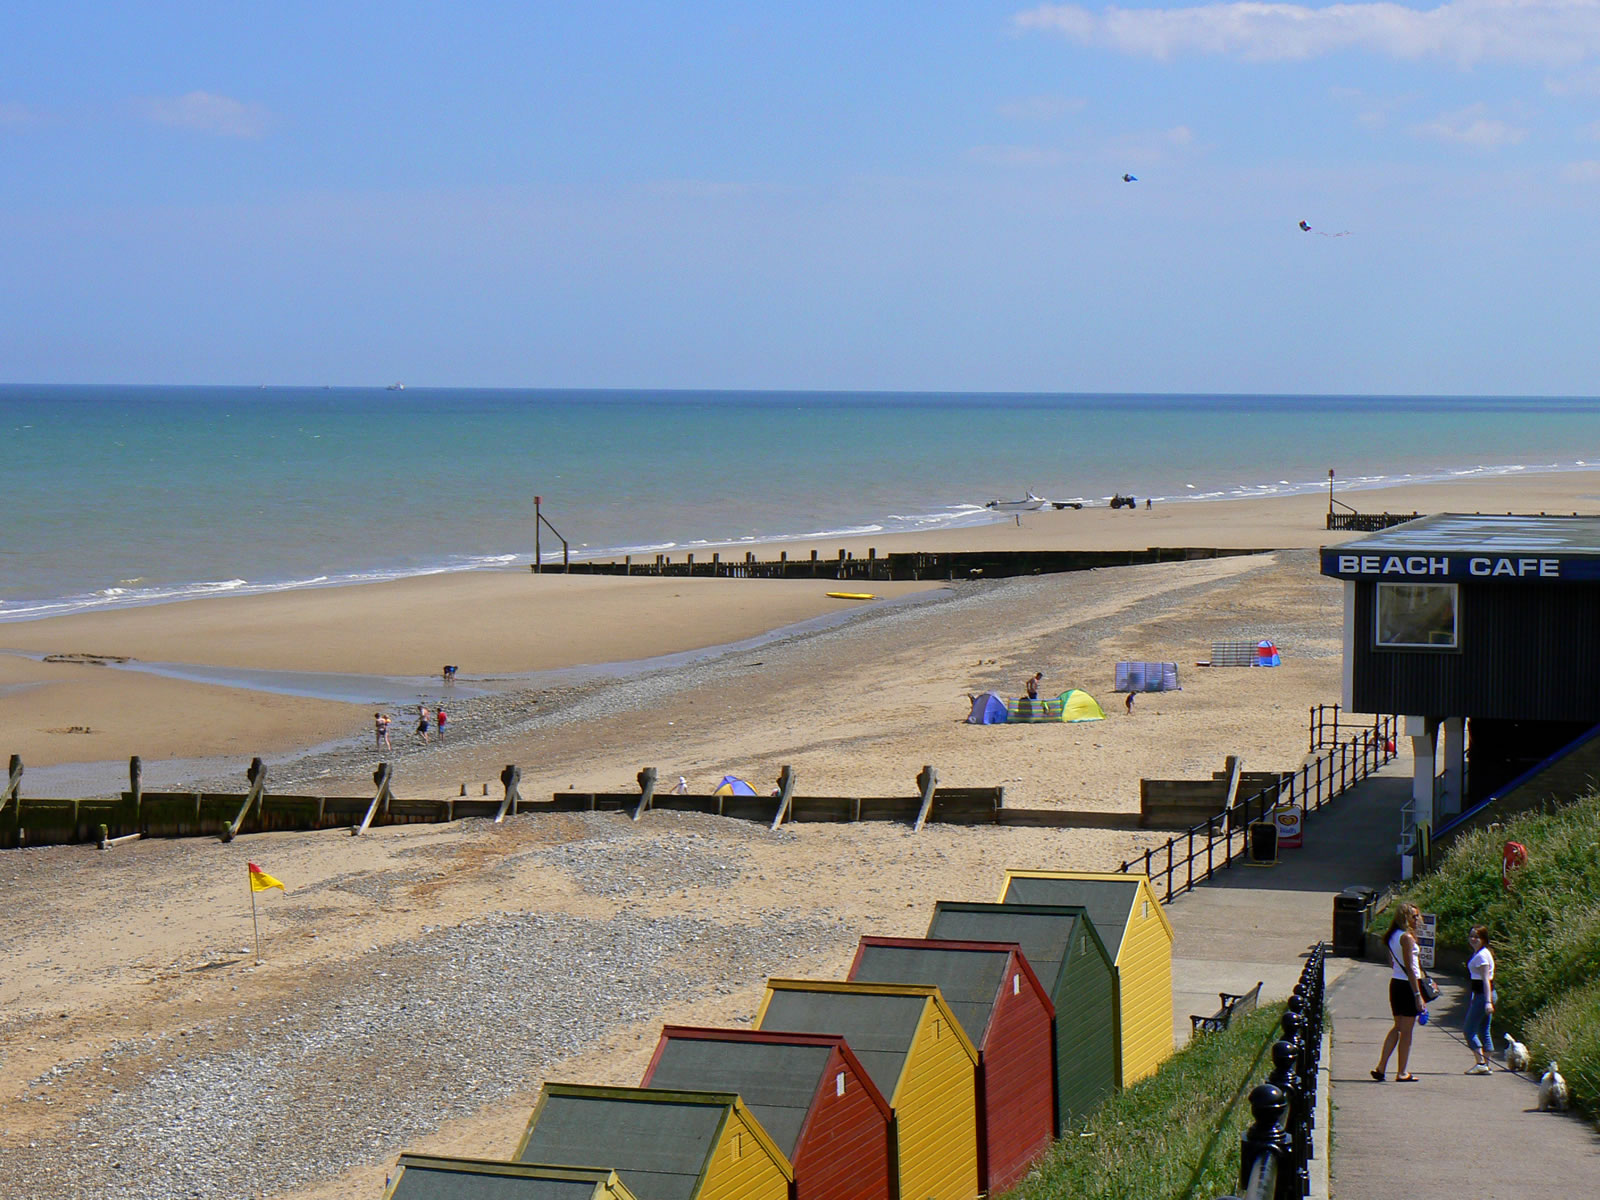 Mundesley beach cafe